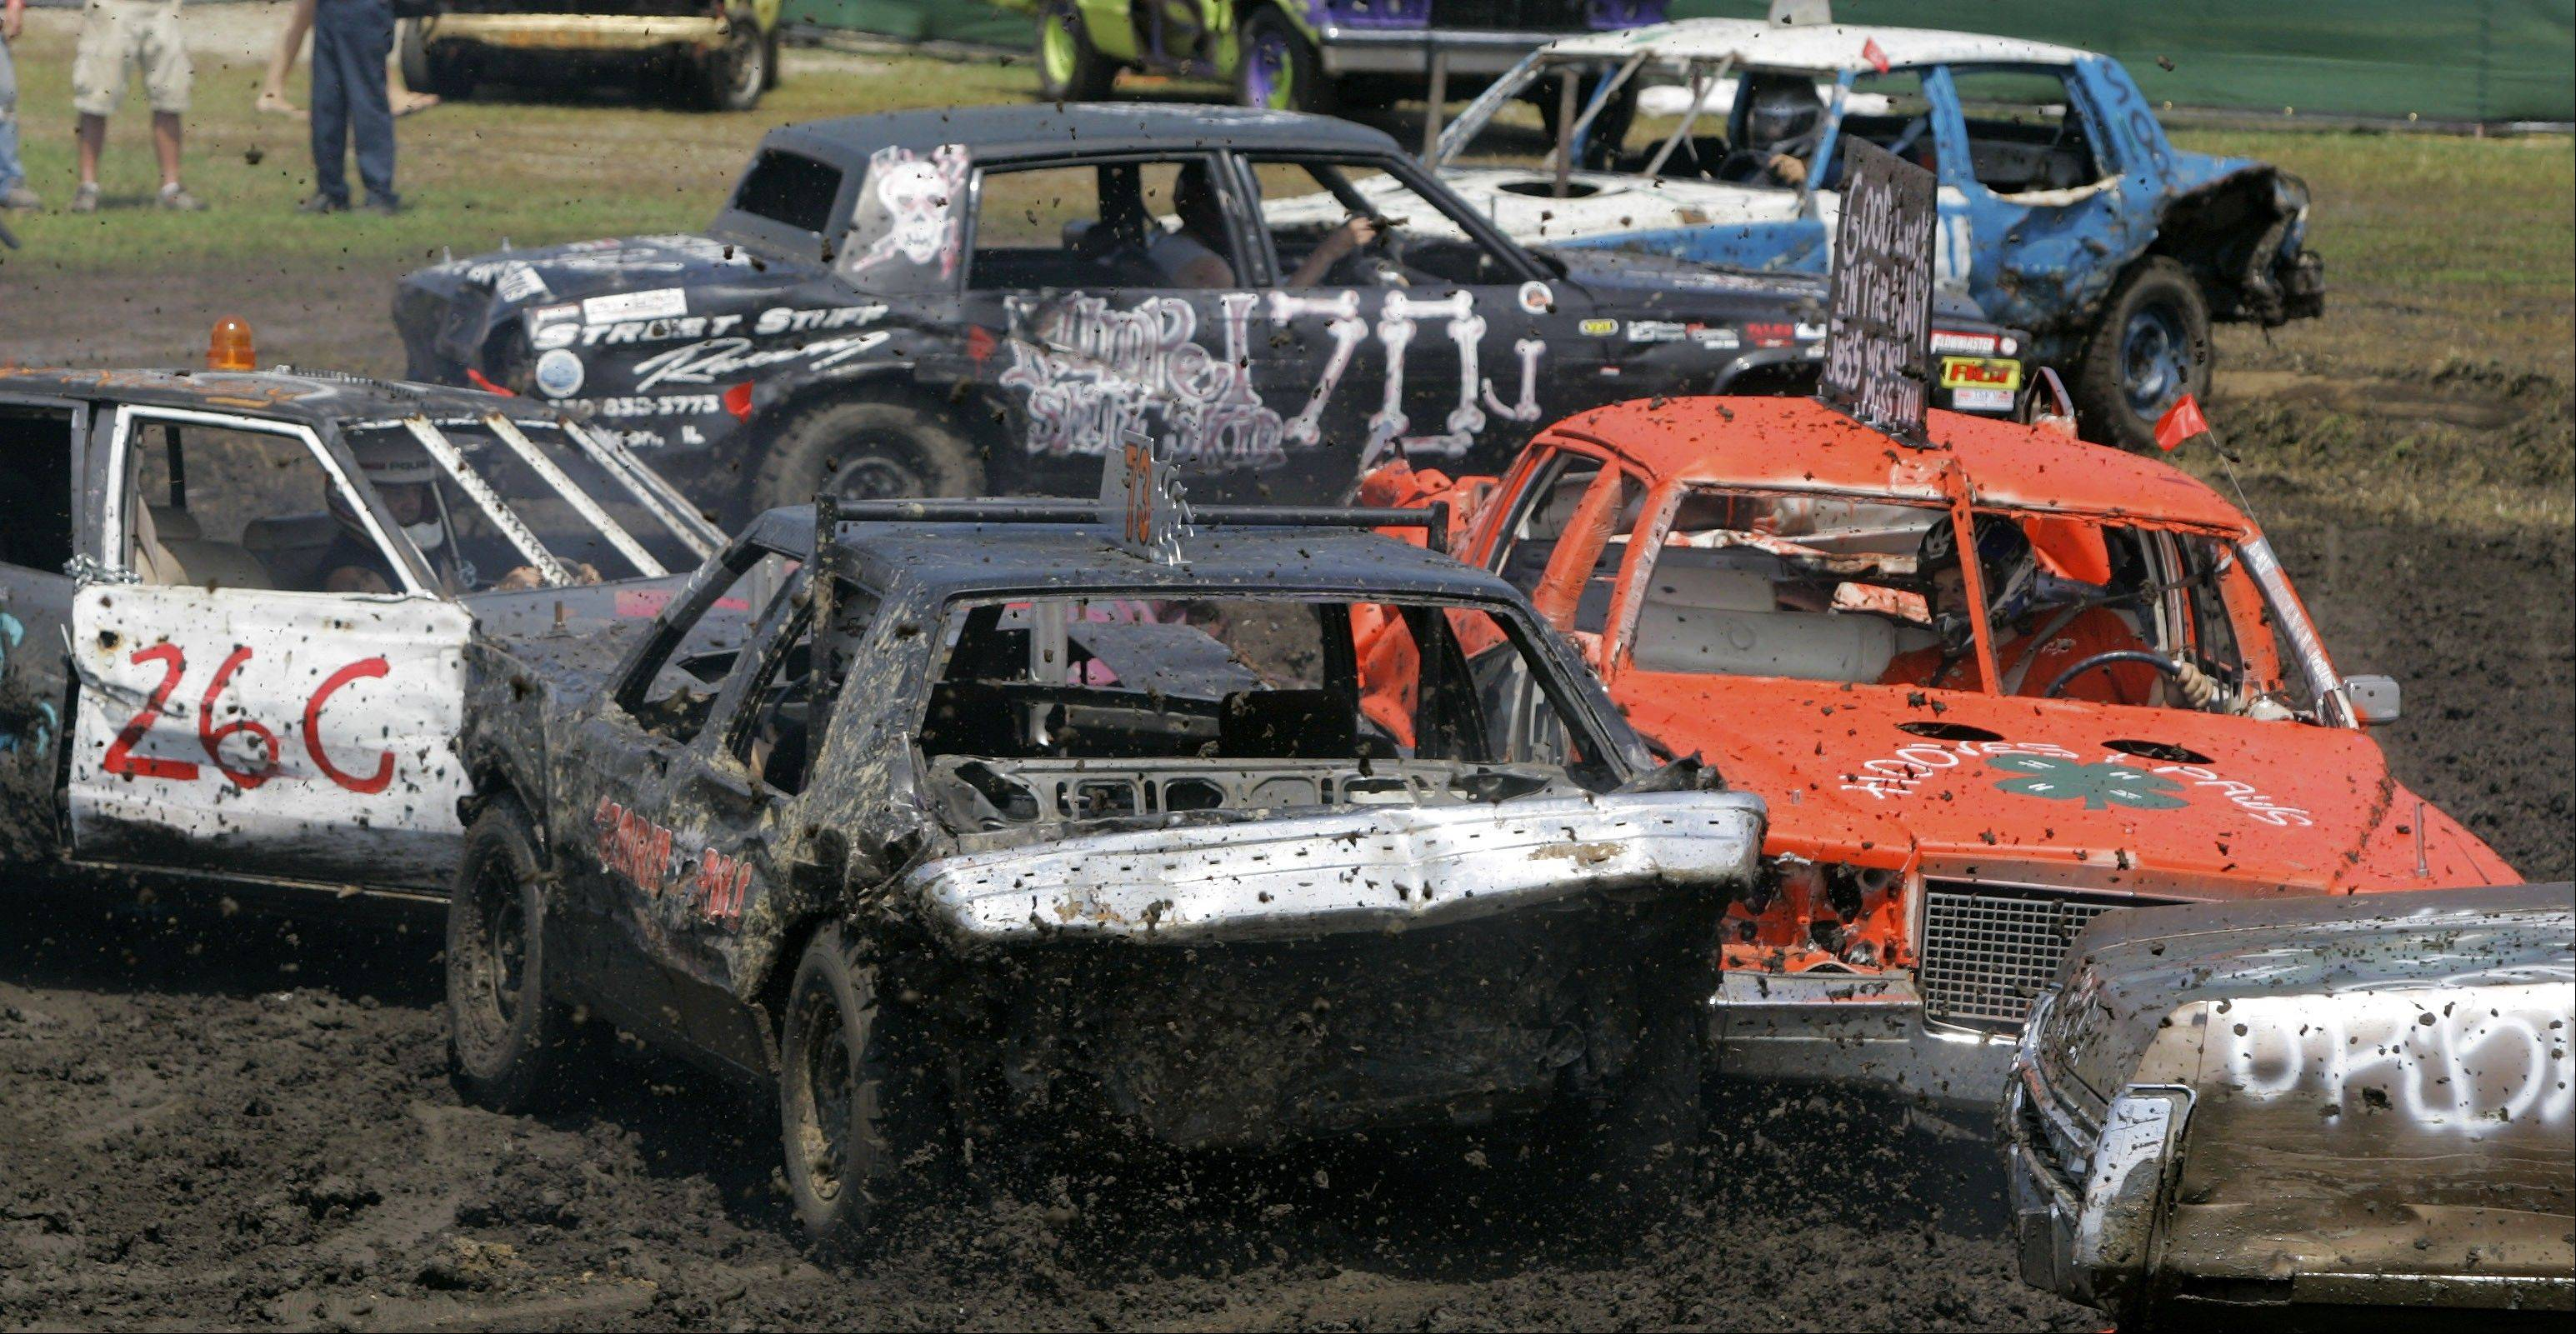 Cars will smash into each other at 2 and 7 p.m. Sunday, July 29, at the DuPage County Fair Demolition Derby in Wheaton.